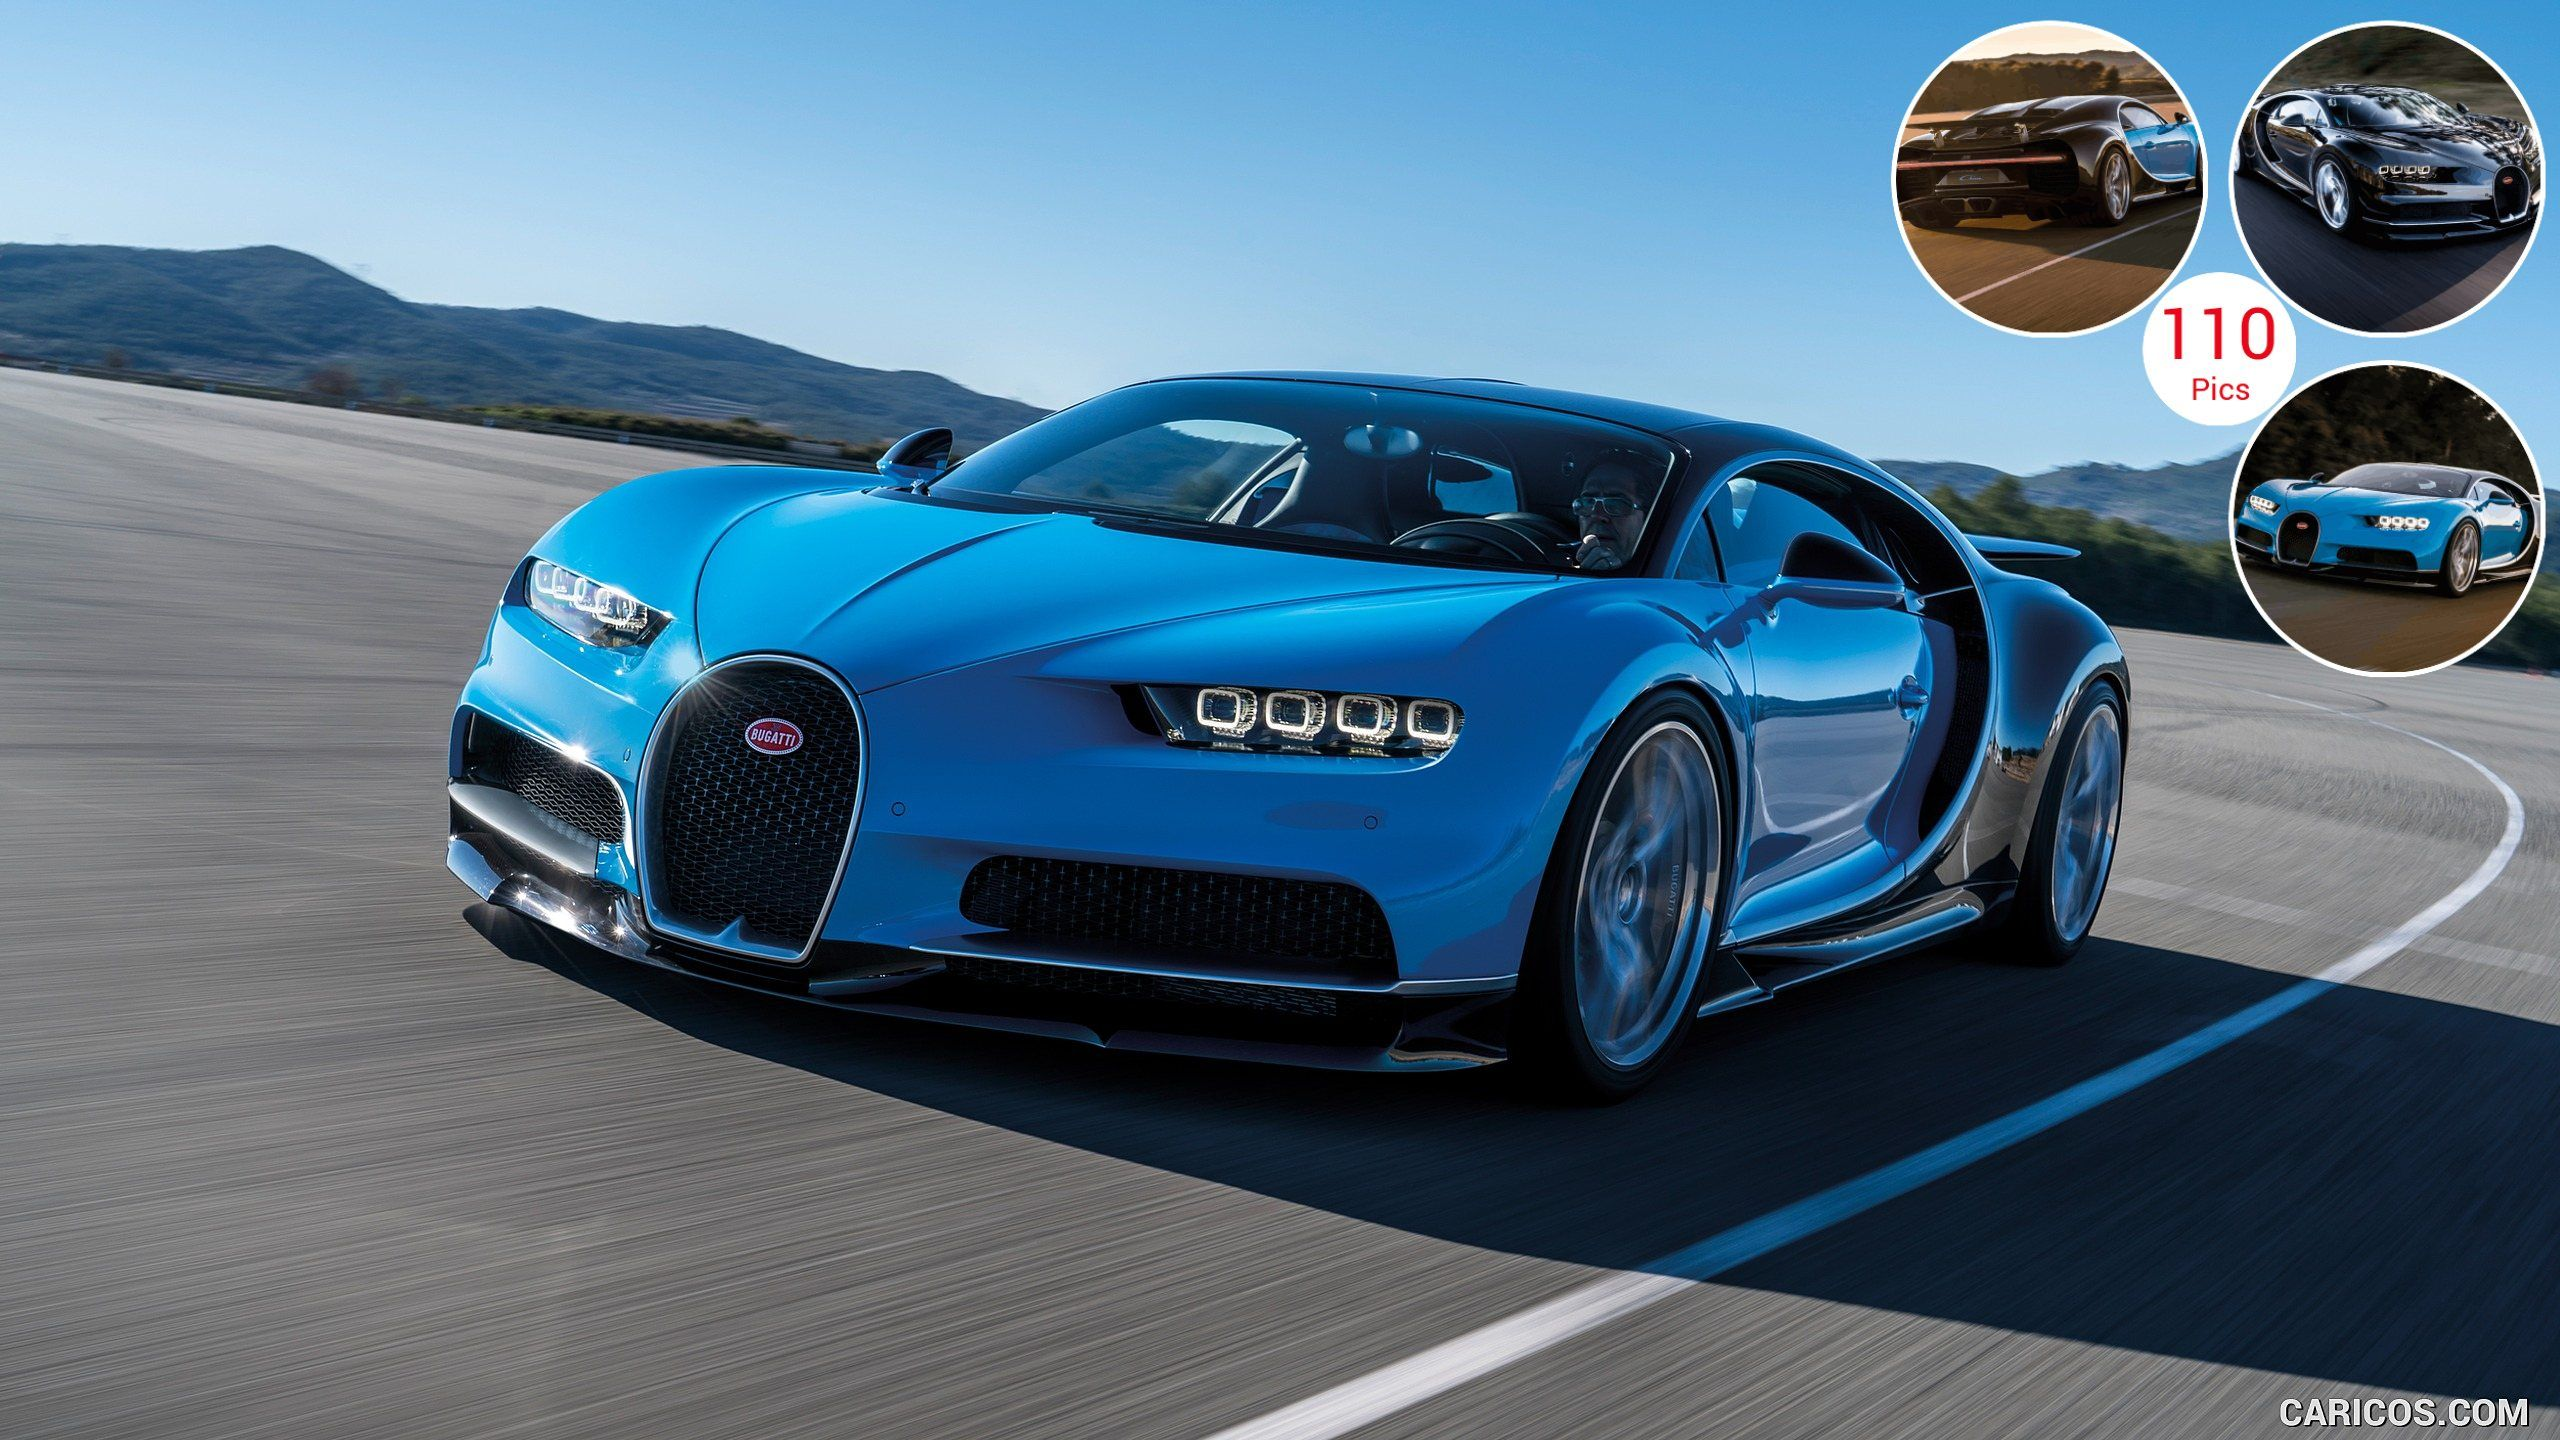 Blue Bugatti Wallpapers Top Free Blue Bugatti Backgrounds Wallpaperaccess